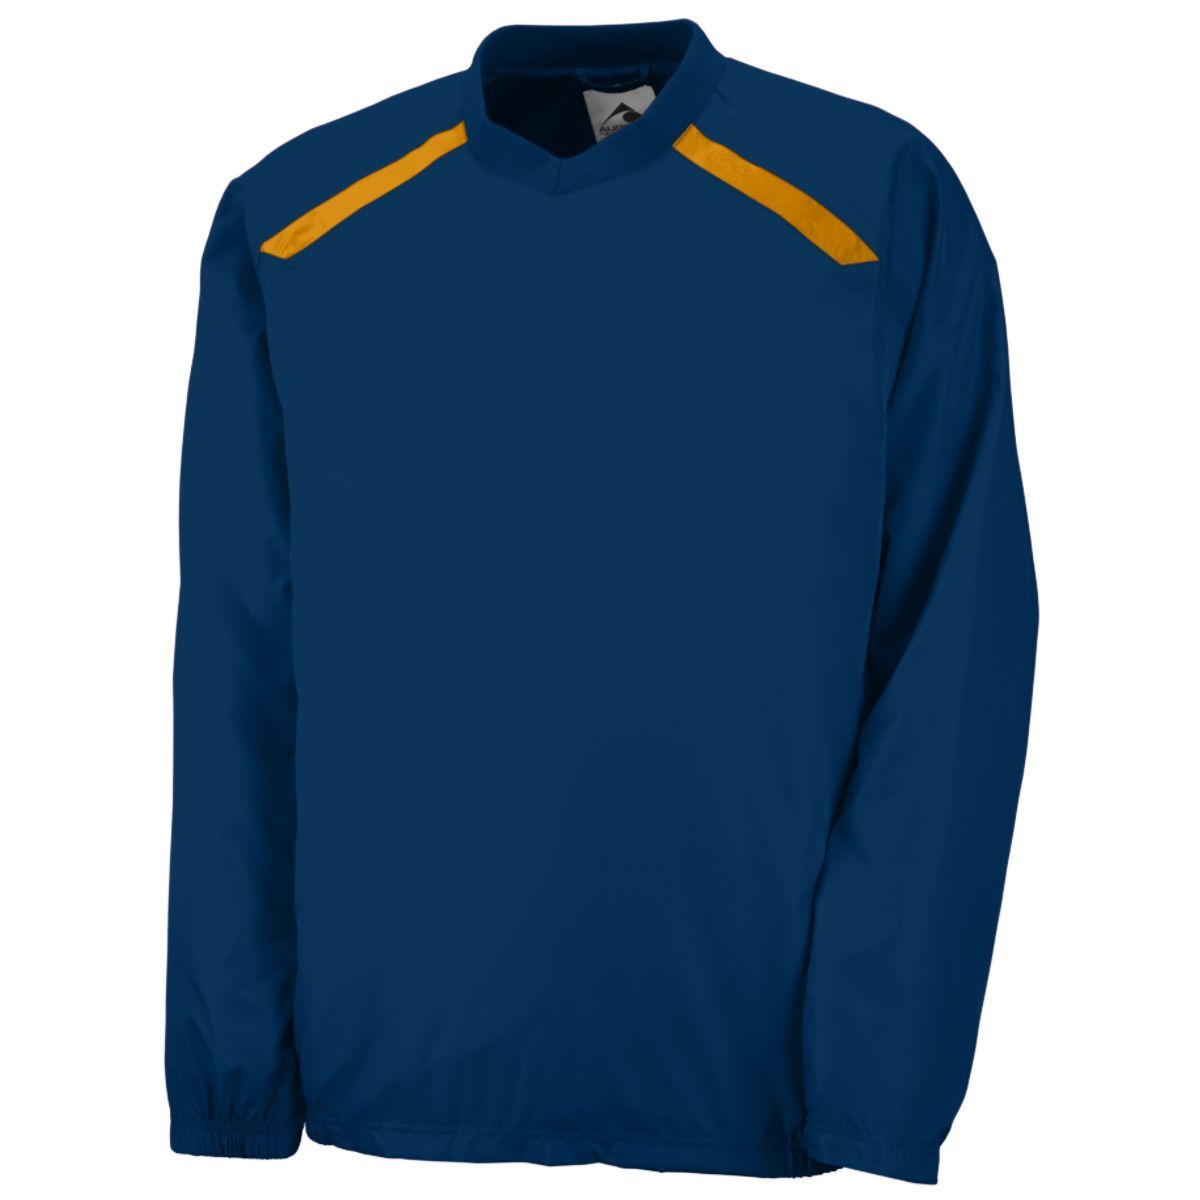 Promentum Pullover - NAVY/GOLD